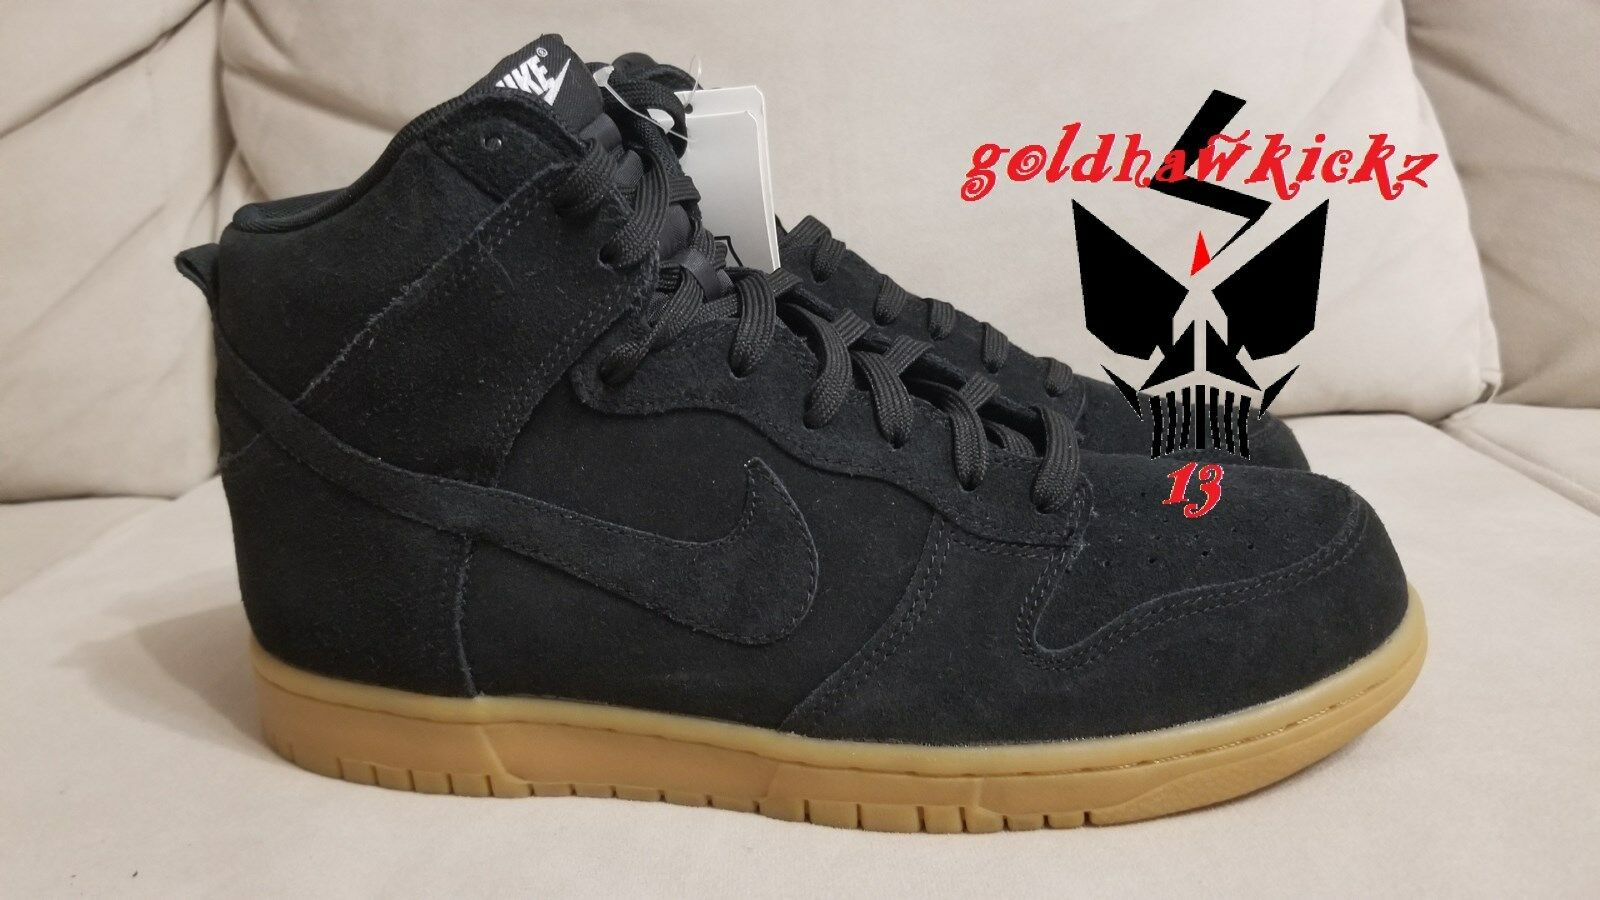 nike dunk high black unreleased gum 904233 003 suede unreleased black sample 1cbddc